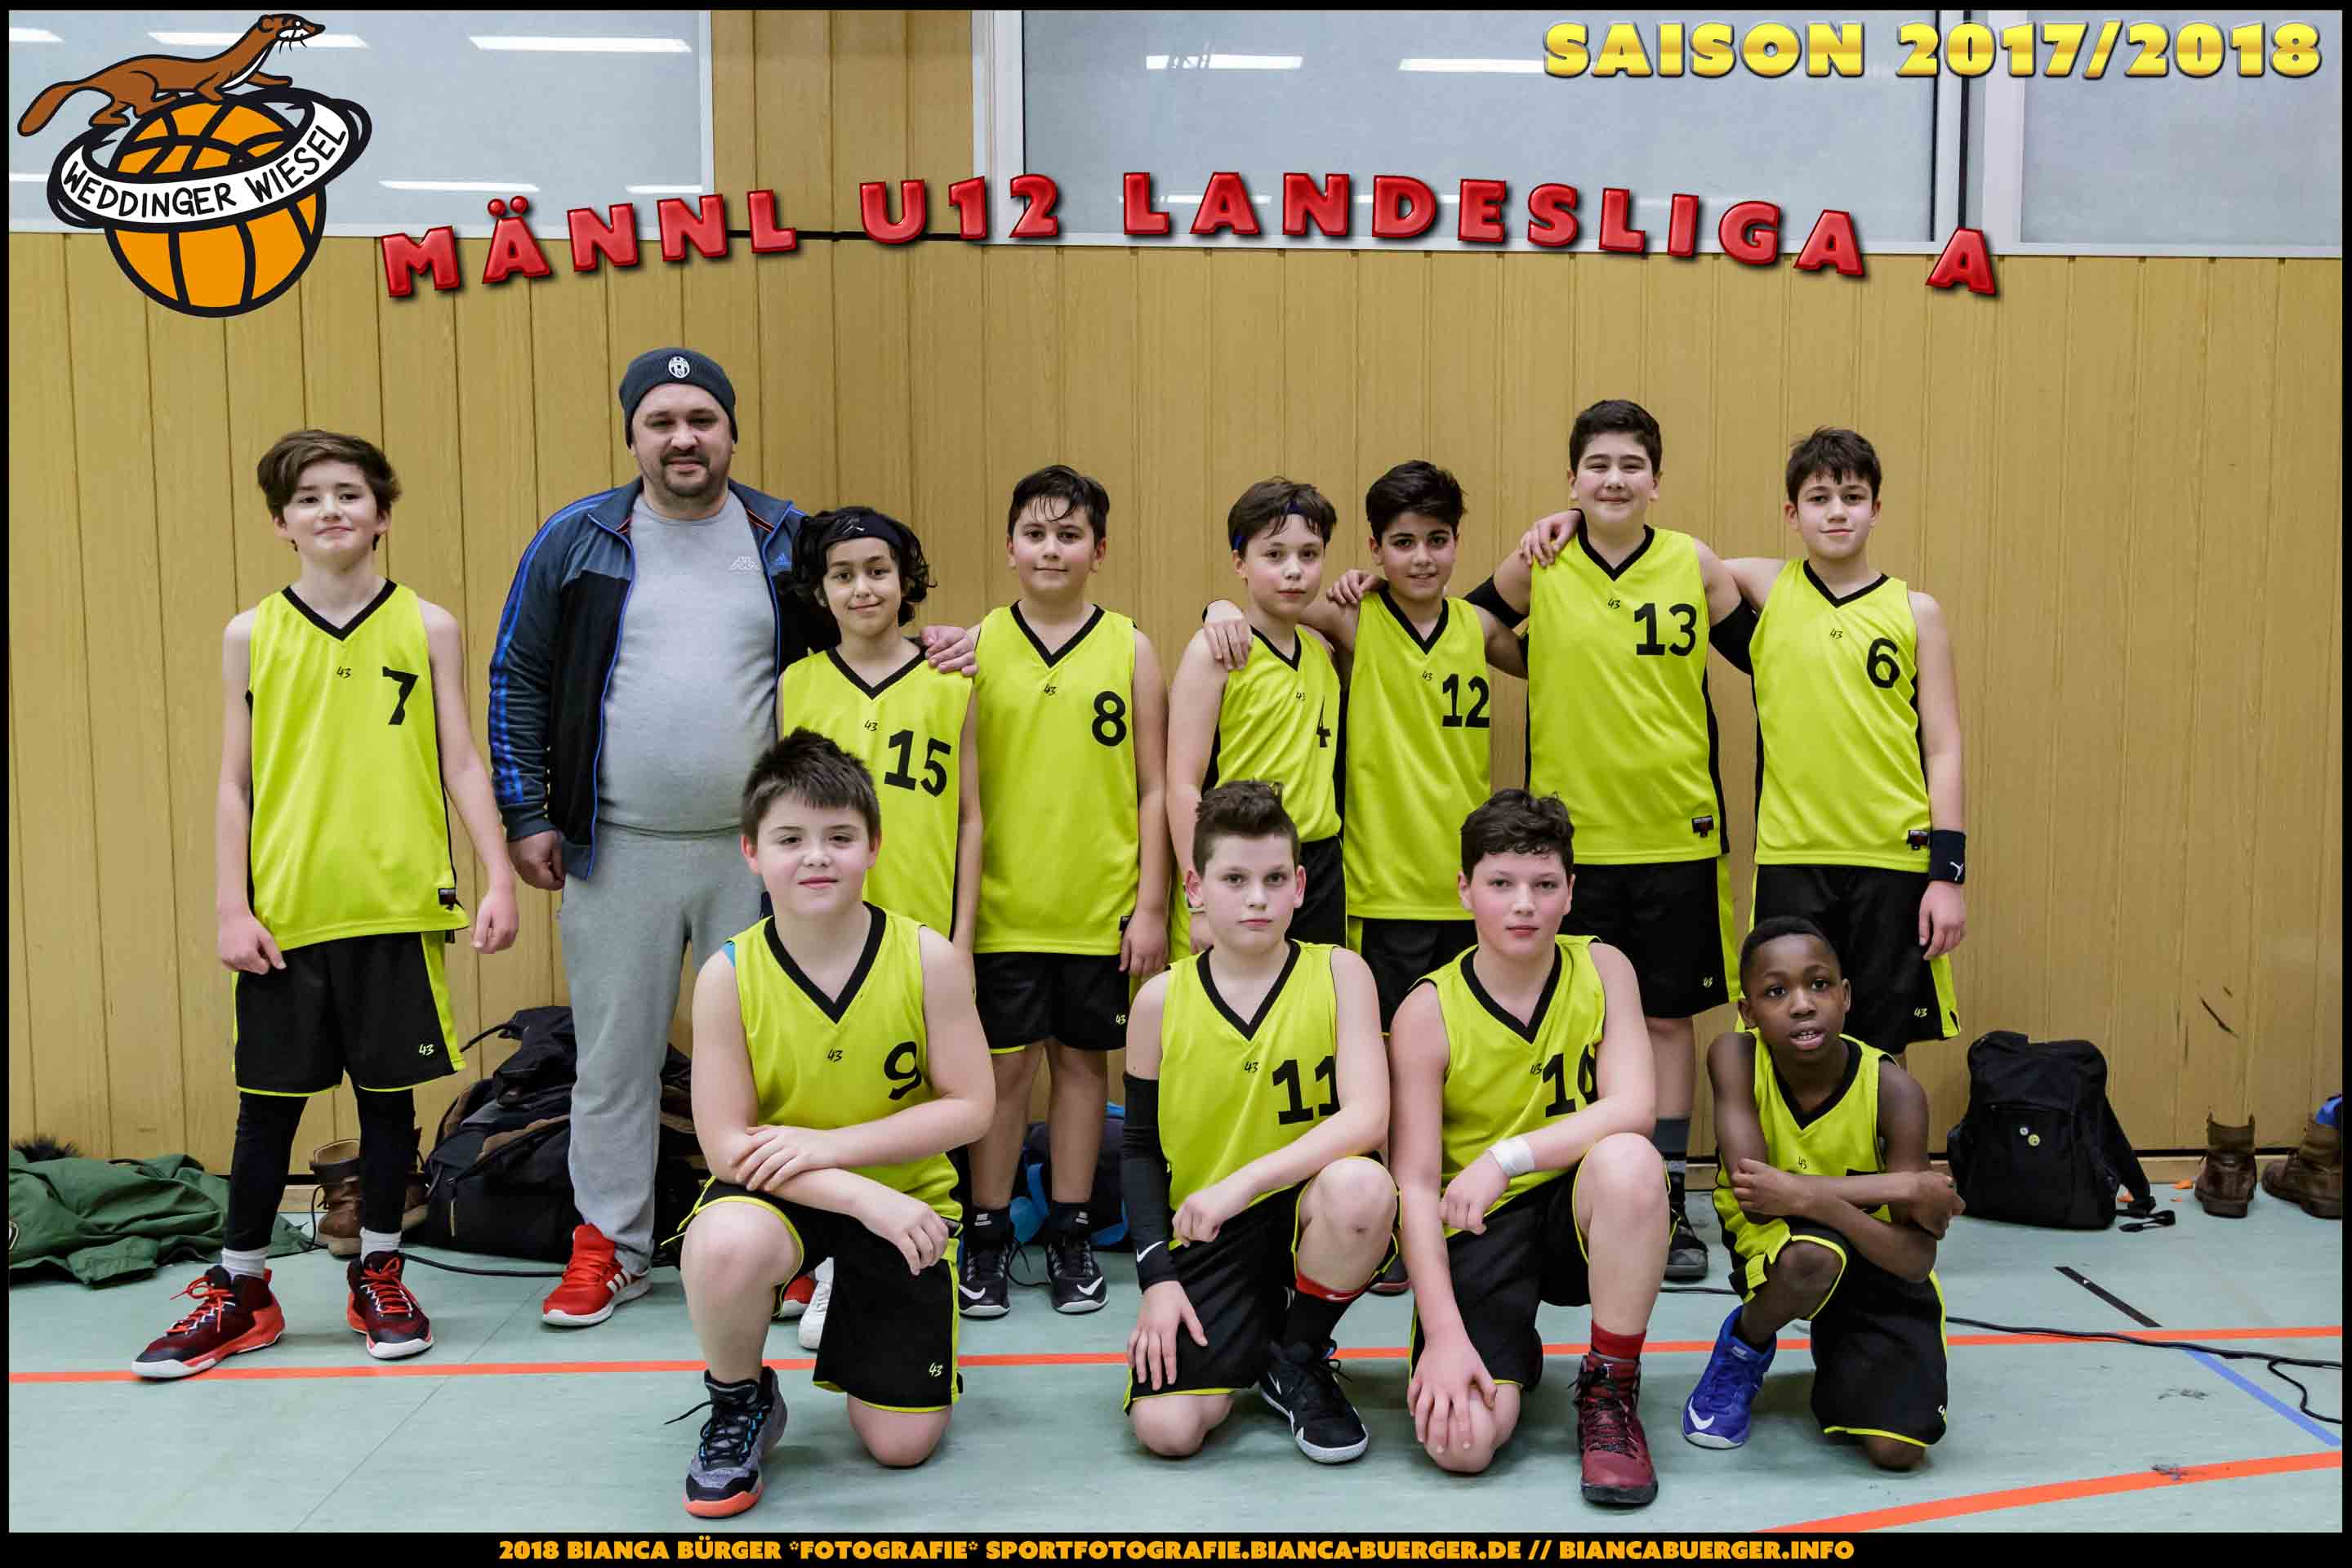 Teamfoto mU12 Weddinger Wiesel Saison 2017-2018 (Basketball)